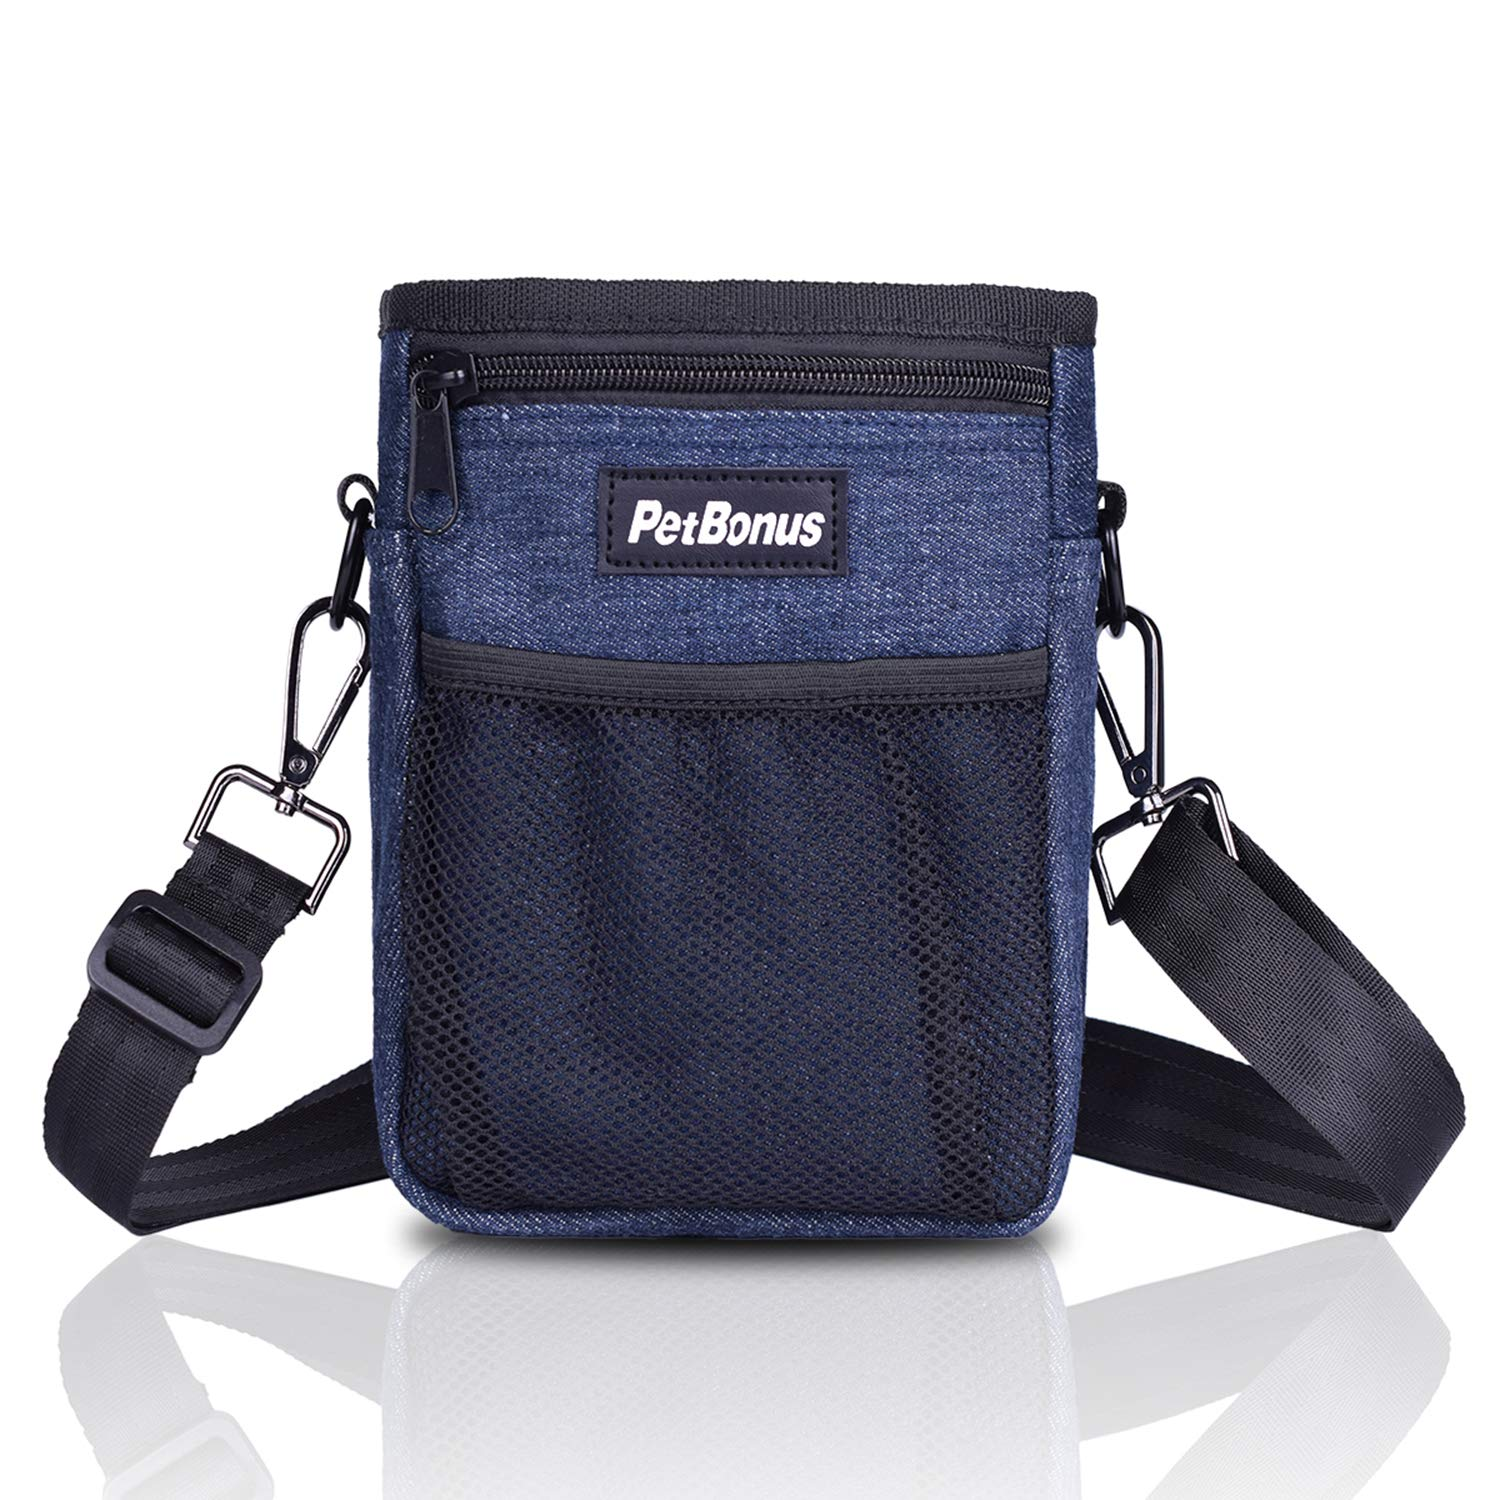 bluee PetBonus Denim Dog Treat Training Pouch, Dog Treats Bag with Built-in Poop Bag Dispenser, Easily Carries Pet Toys, Kibble, Treats 3 Ways to Wear 2 Black Carabiners Included(bluee)